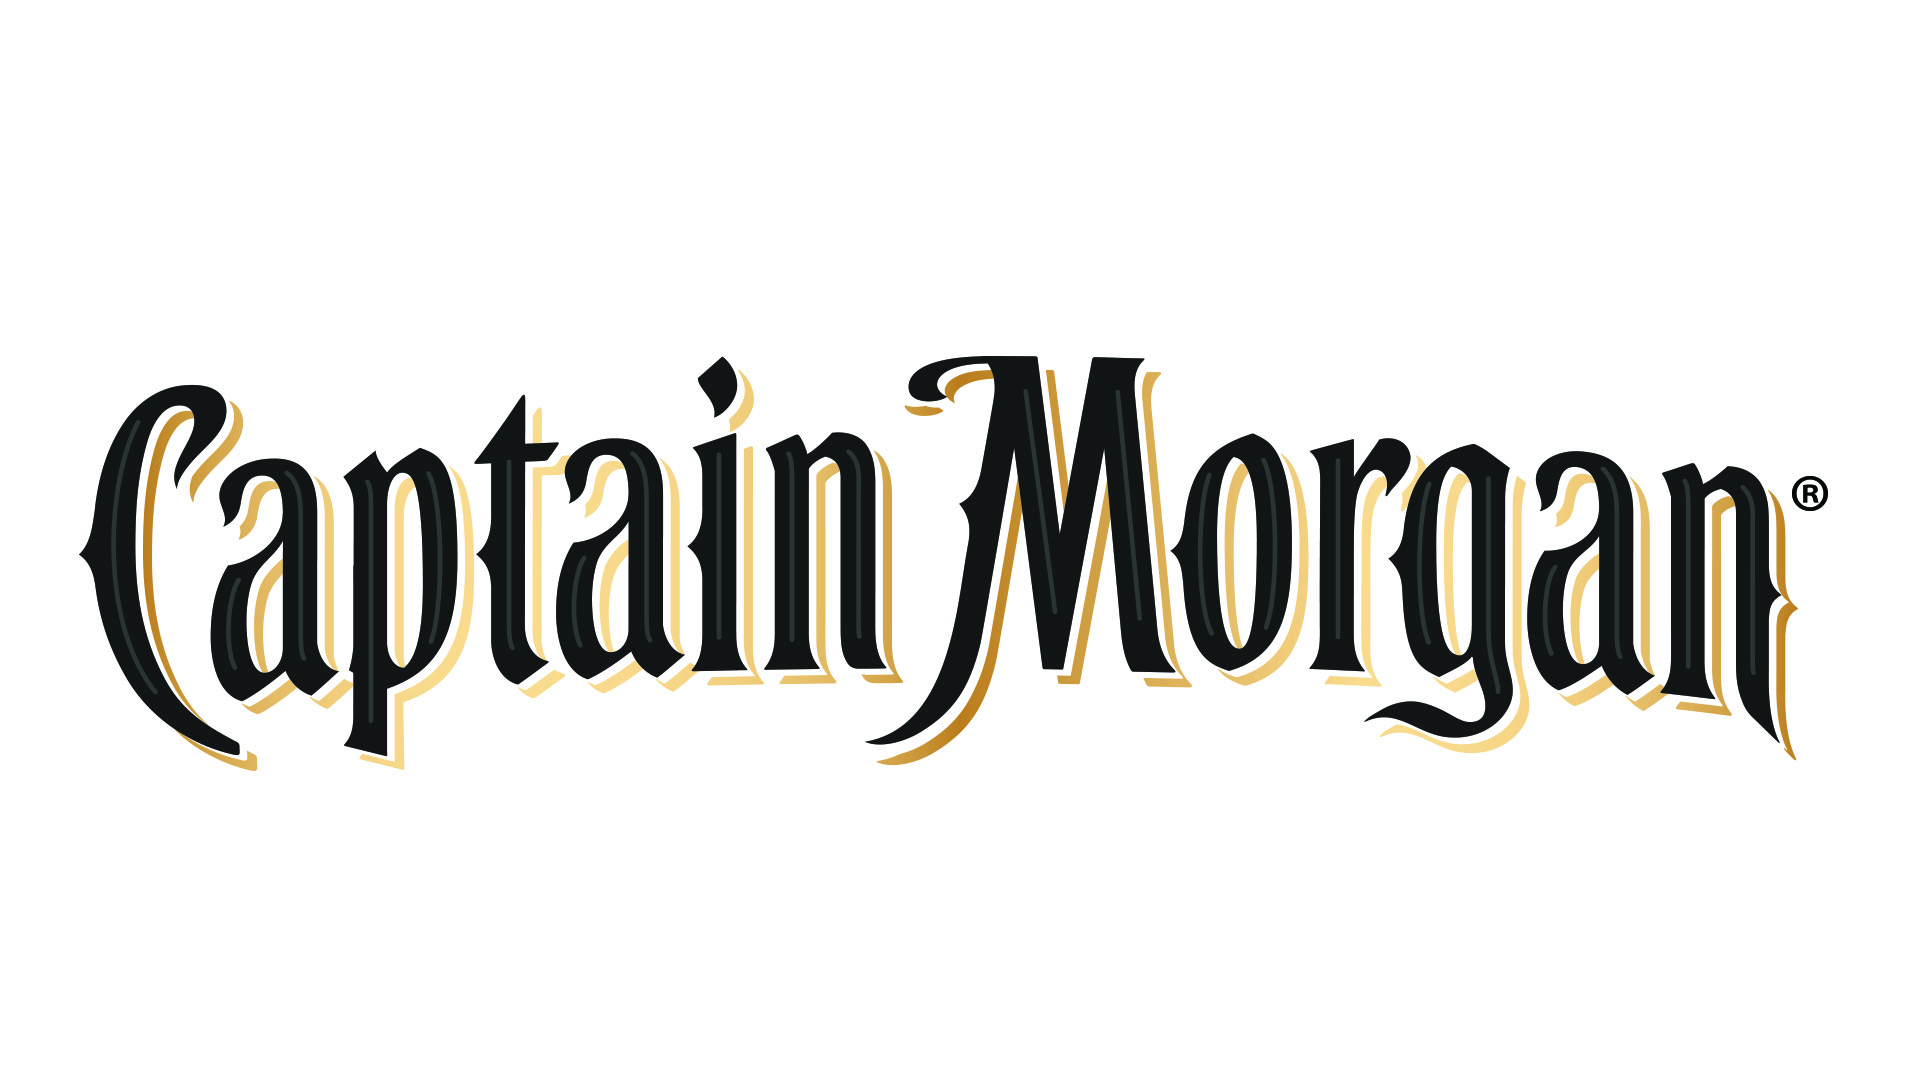 Captain Morgan - WITHOUT IMAGE (2).jpg